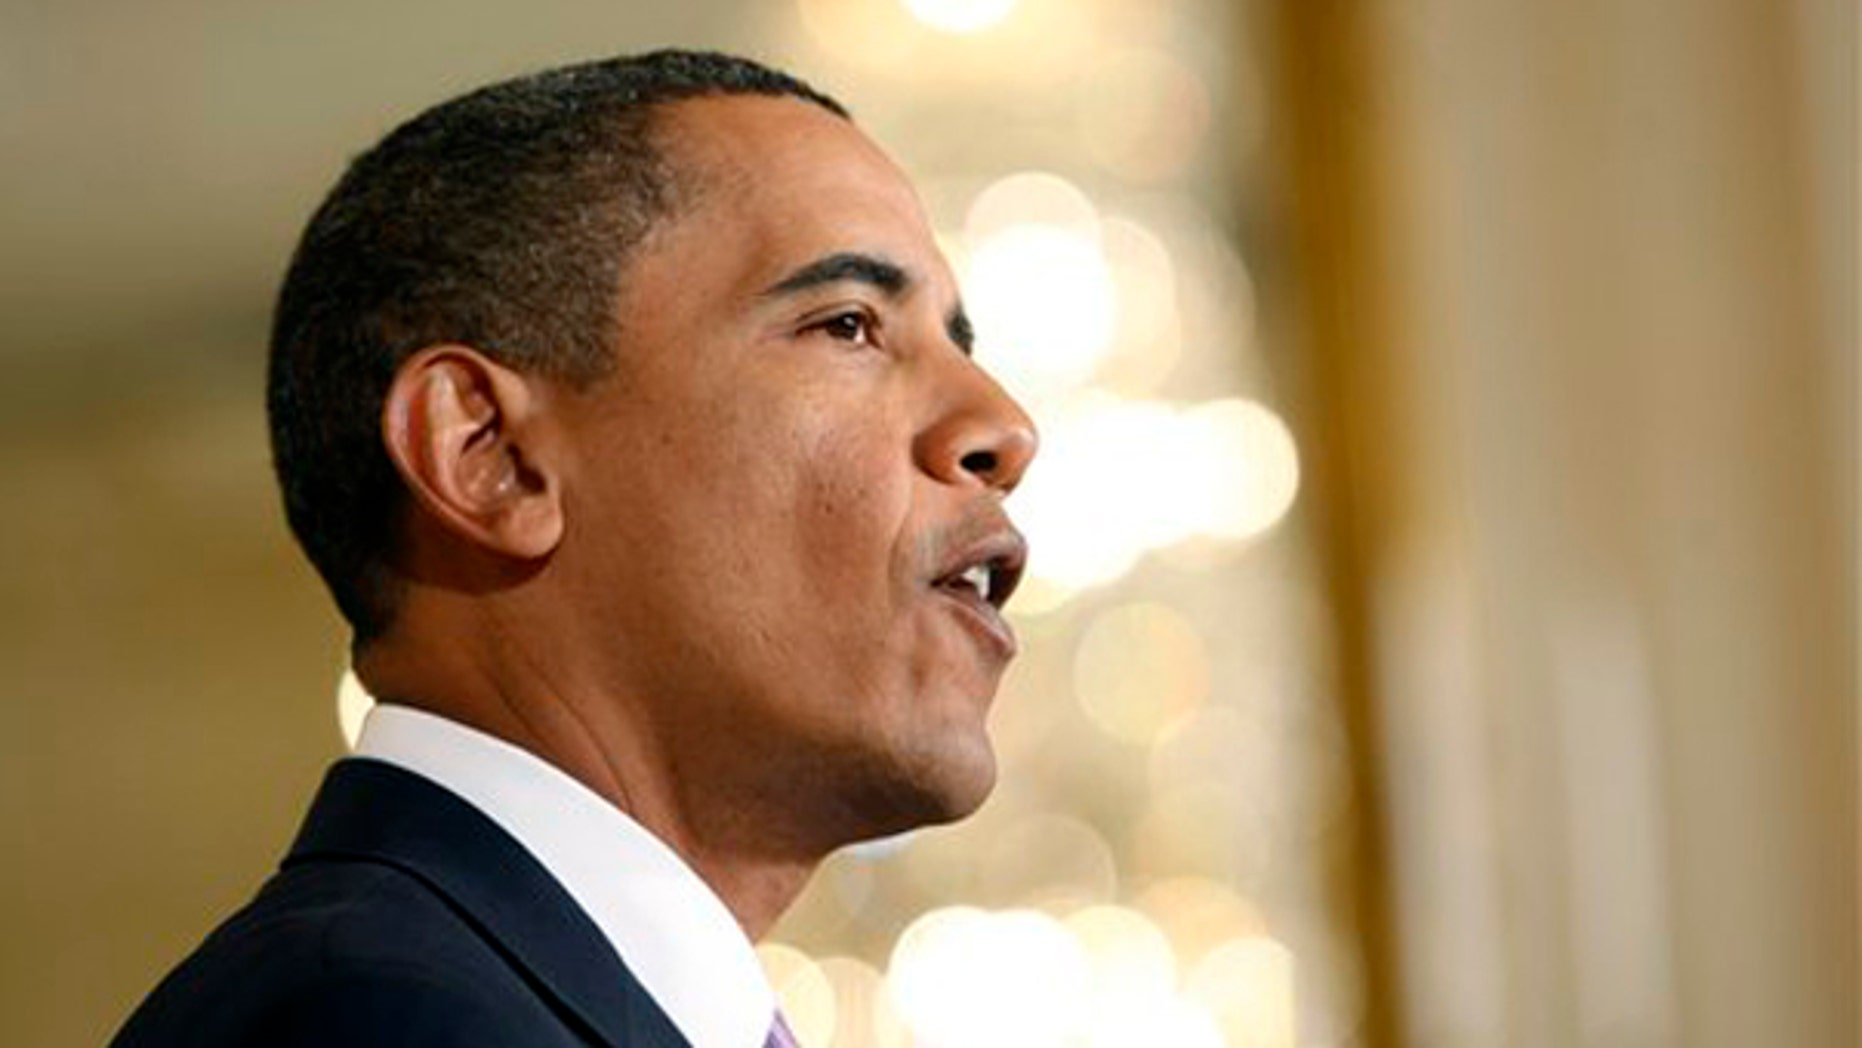 President Obama speaks about the economy, Friday, Jan. 8, 2010, in the East Room of the White House in Washington. (AP)